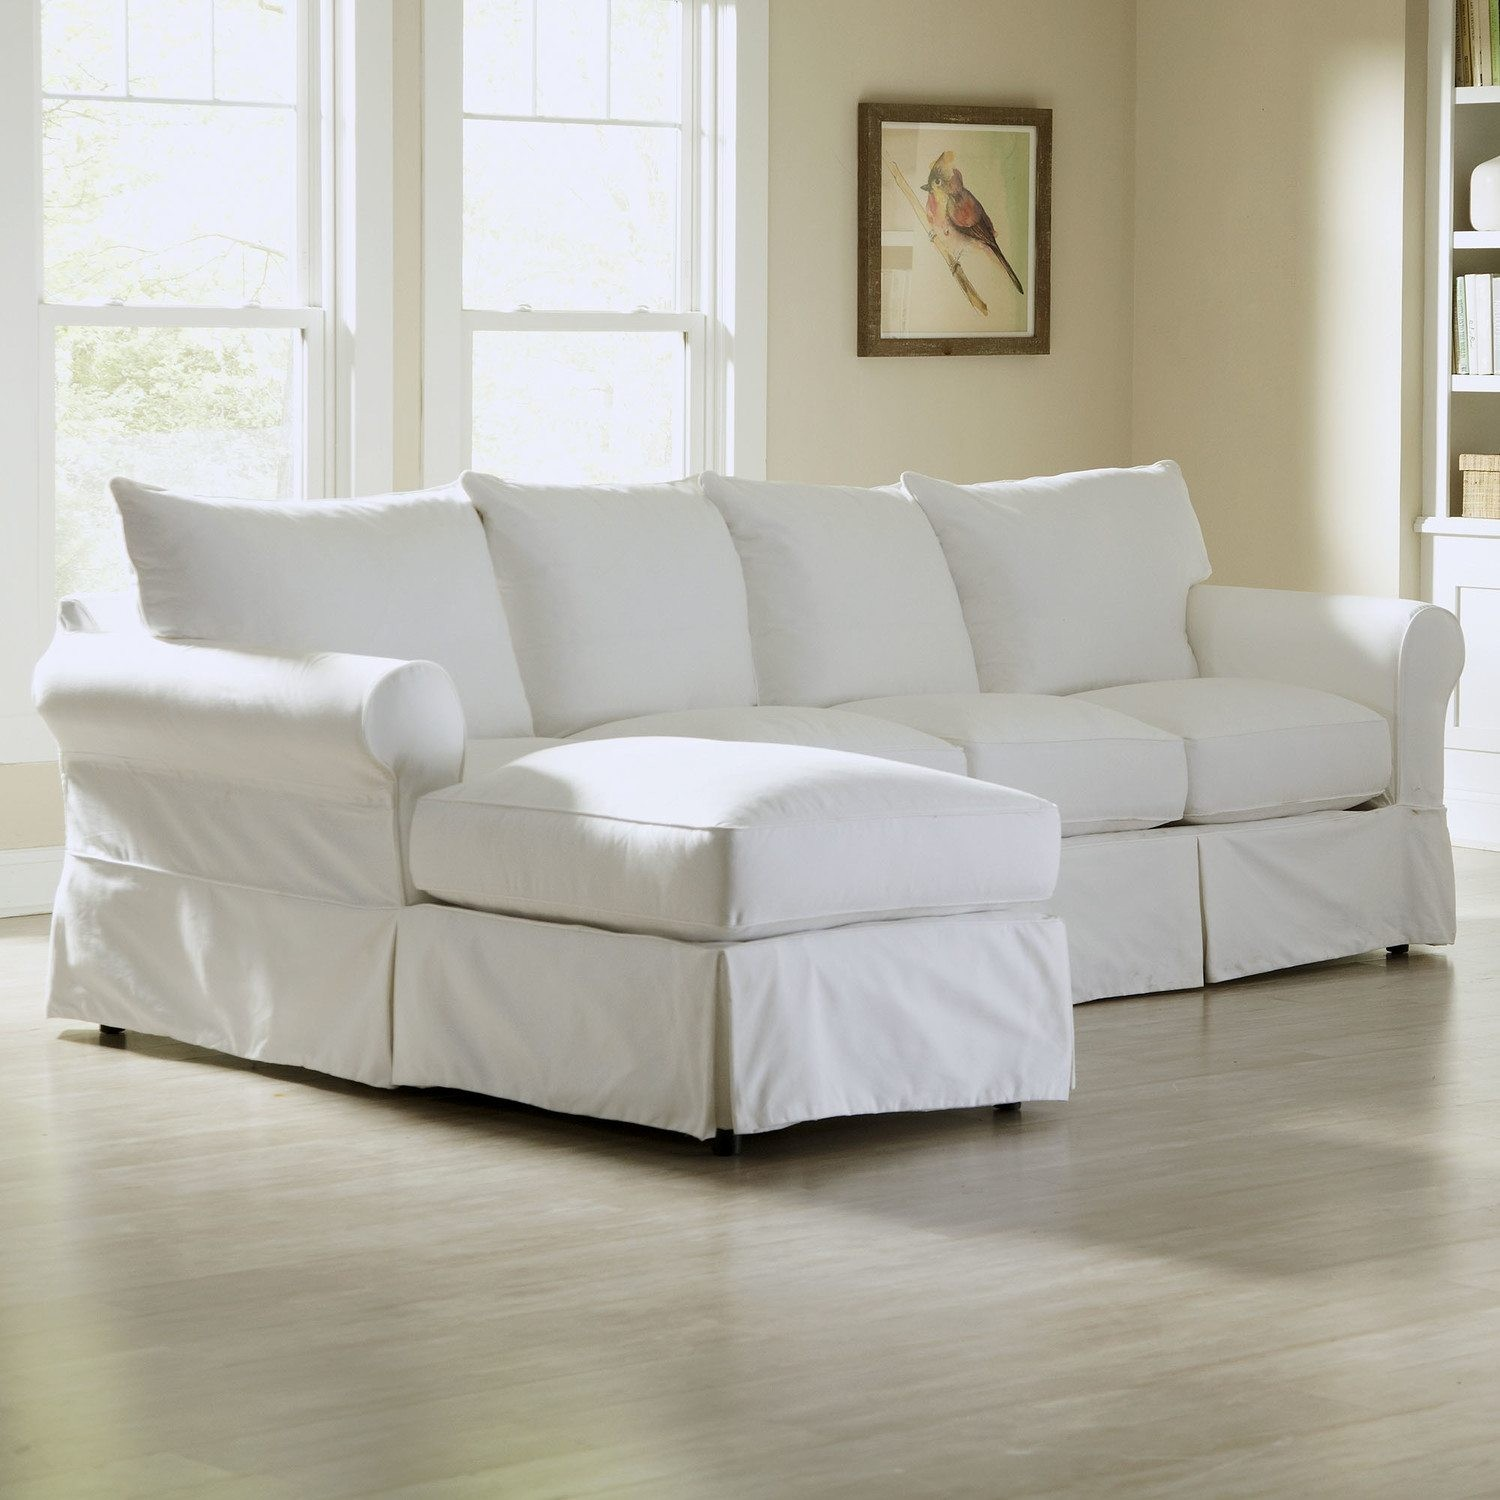 Down Sectional sofa Excellent Sectional sofa Design Down Sectional sofa Blend Wrapped Goose Picture